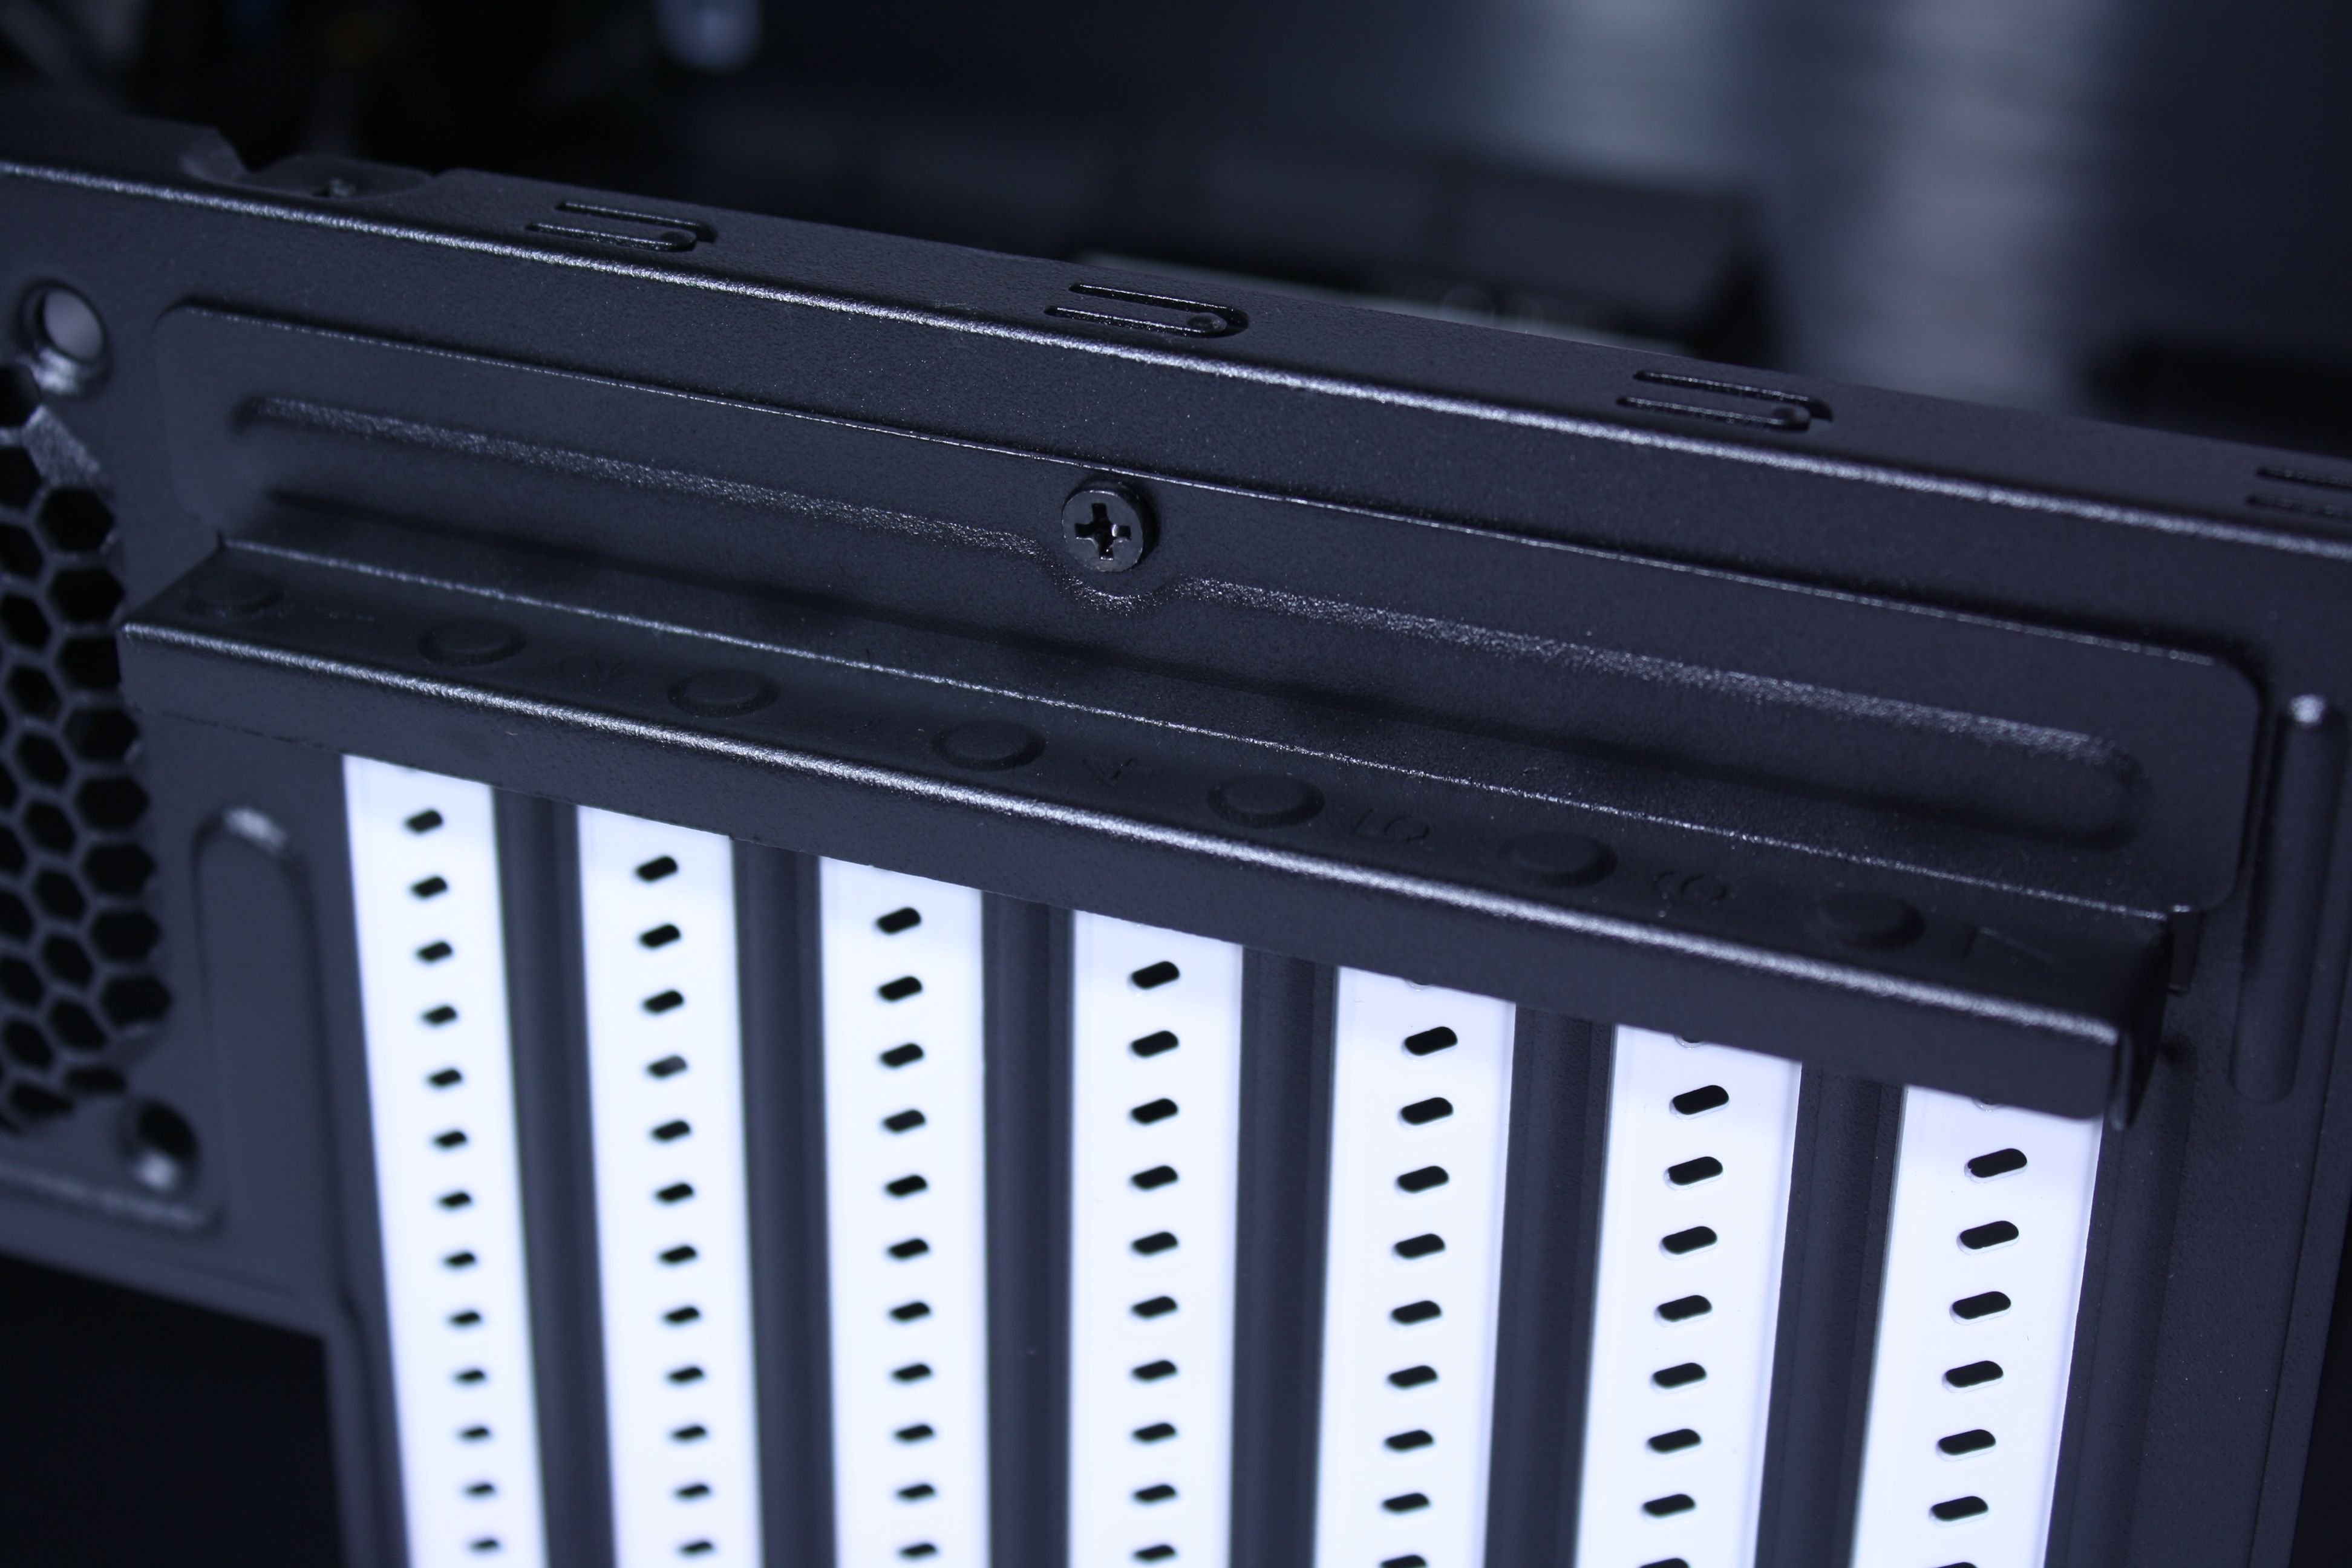 Fractal Design Node 605 Expansion Slot Cover Closed